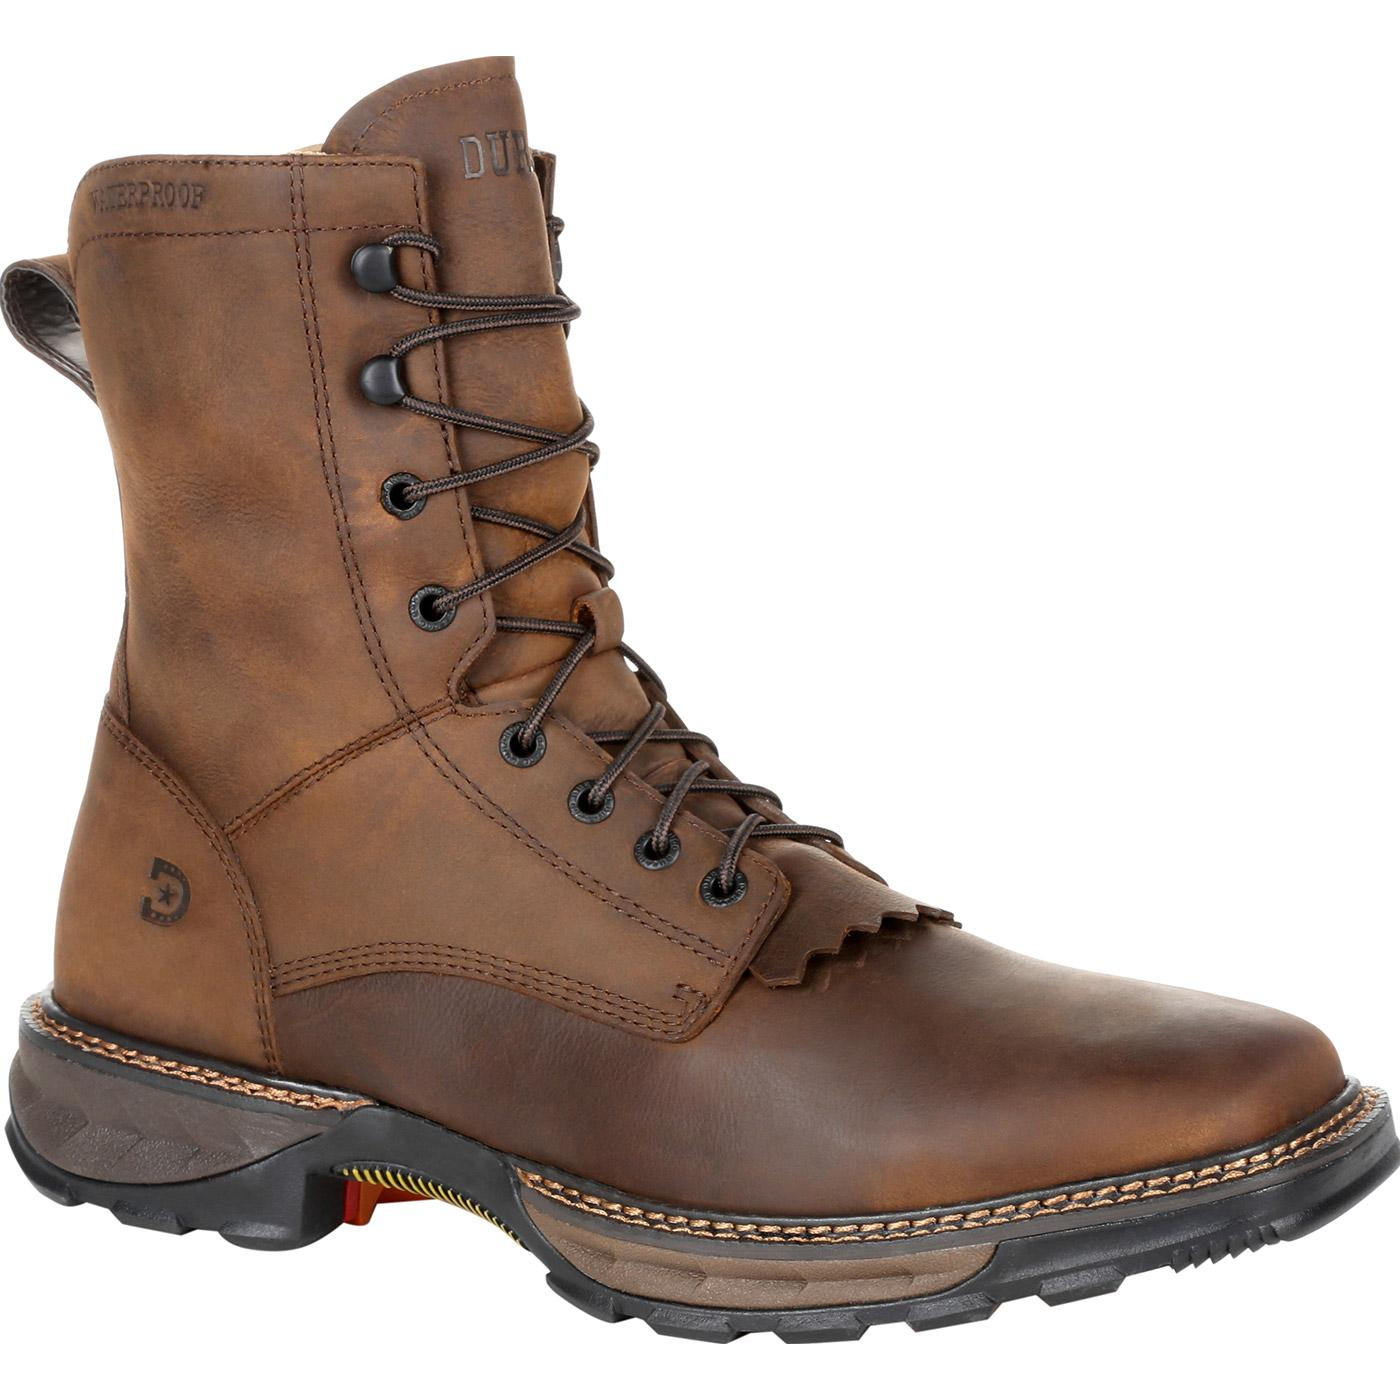 c6e20d808c0 Durango Maverick XP Square Toe Waterproof Lacer Work Boot